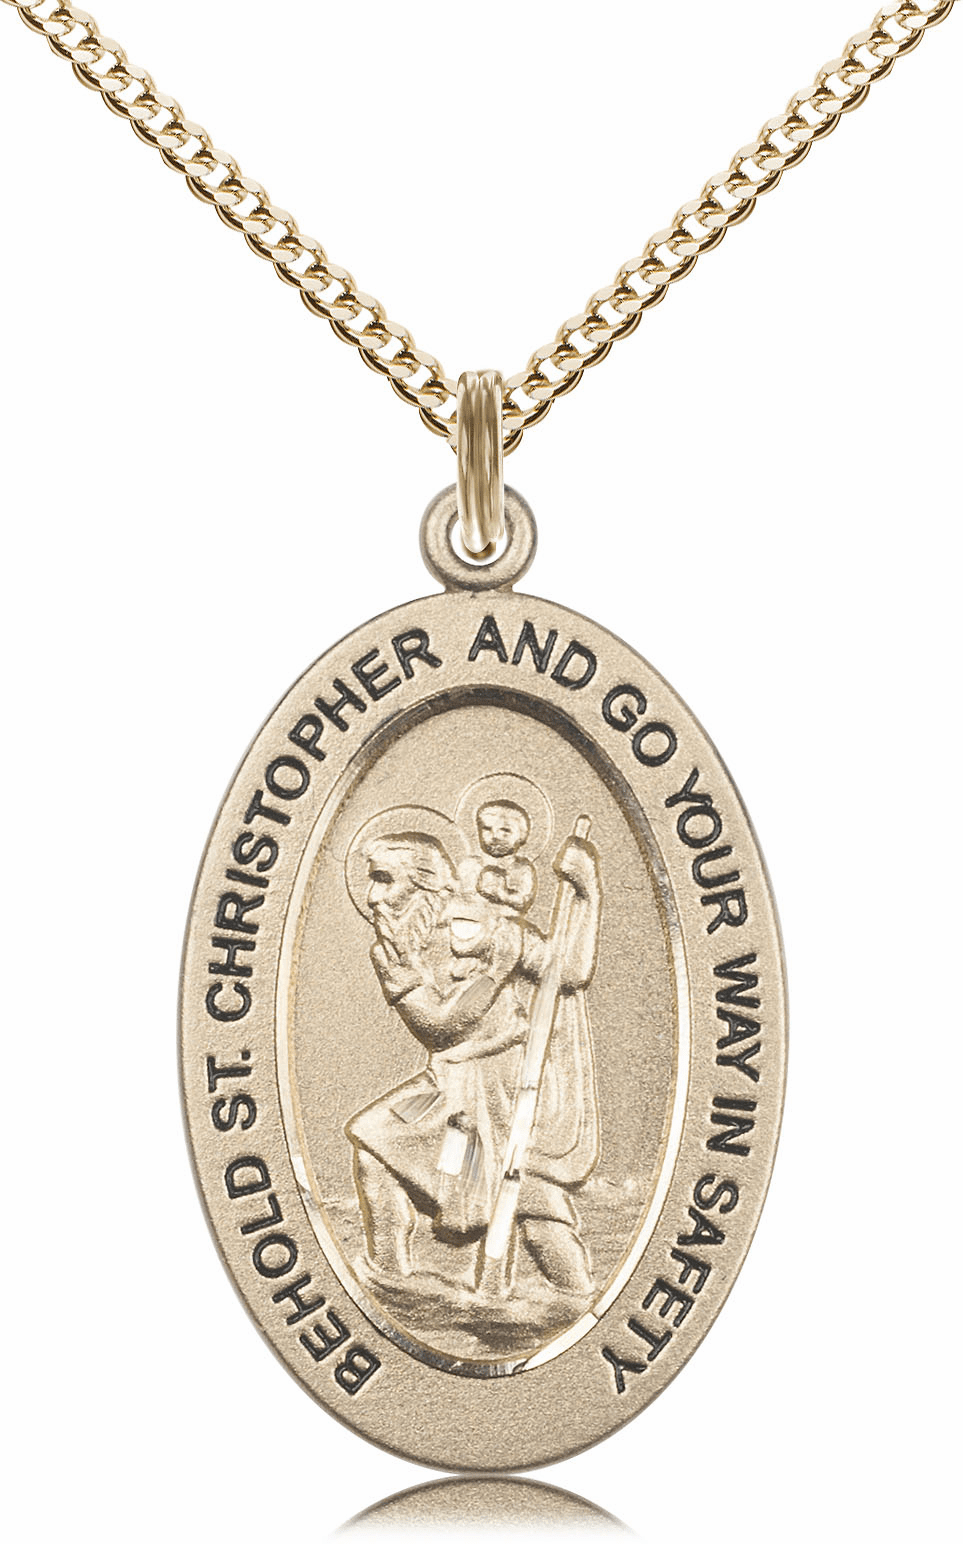 Bliss Mfg Saint Christopher 14kt Gold-filled Medal Necklace w/Chain